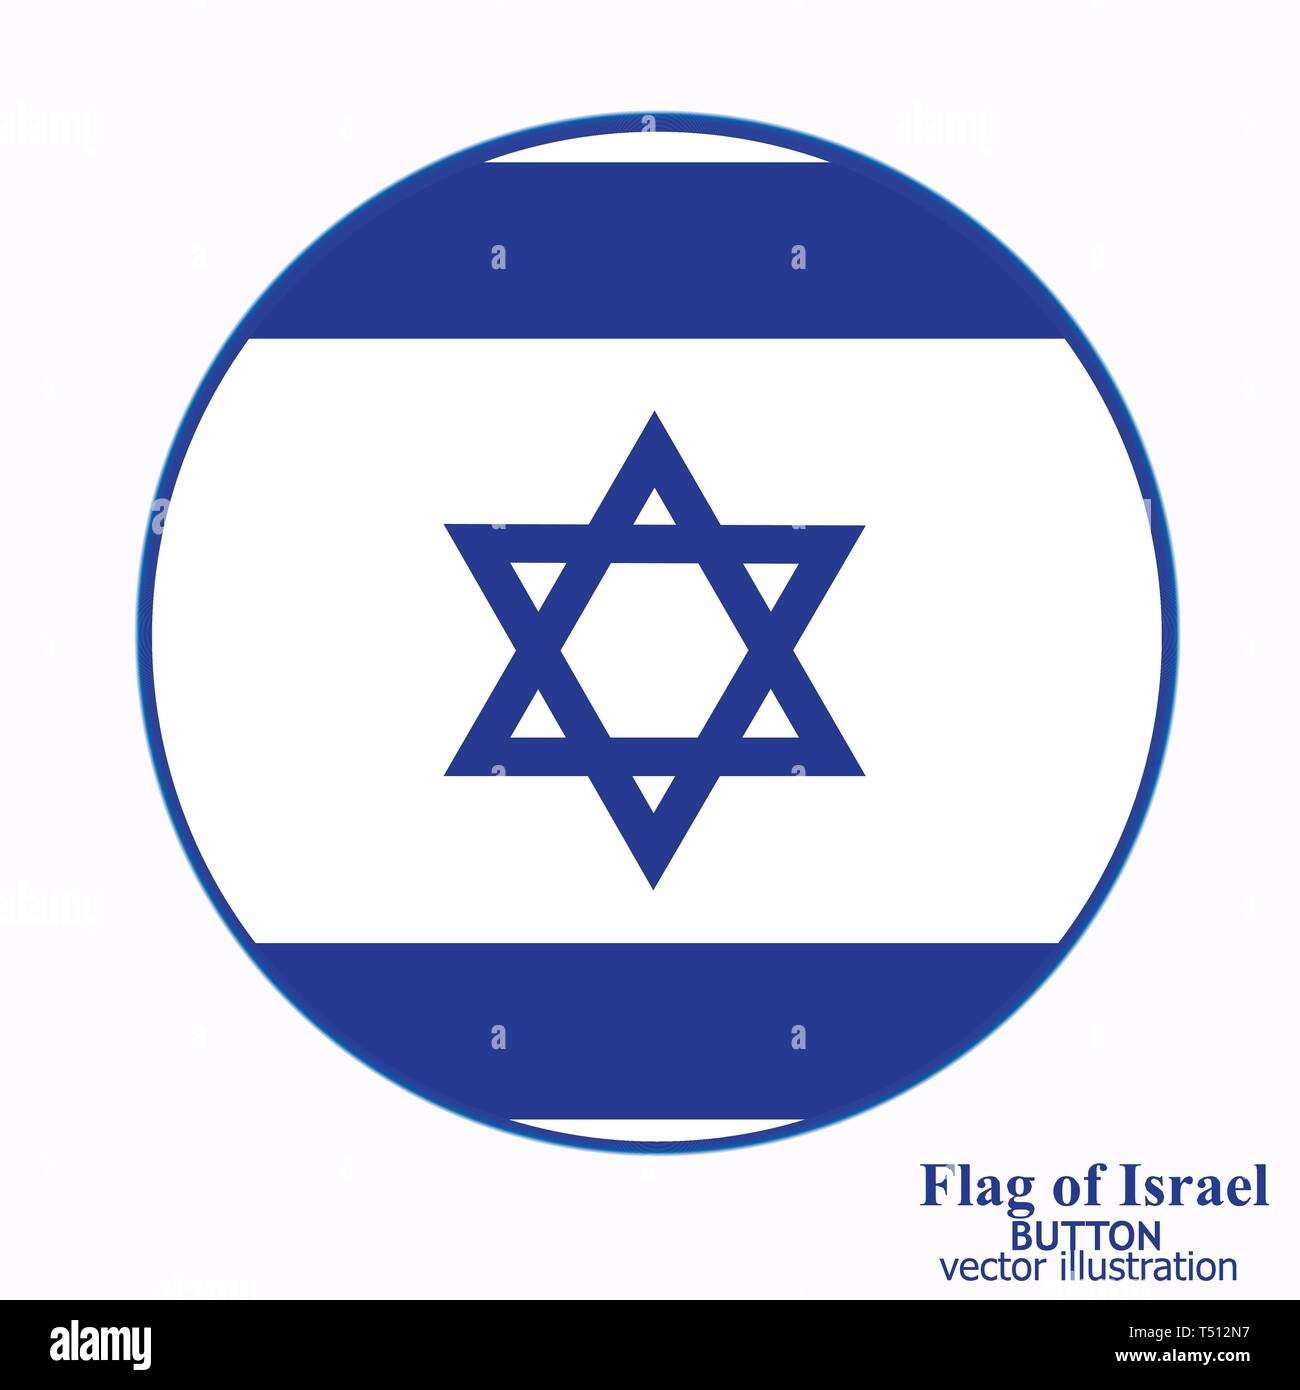 Bright button with flag of Israel. Independence Day of Israel background. Bright illustration with flag . - Stock Image